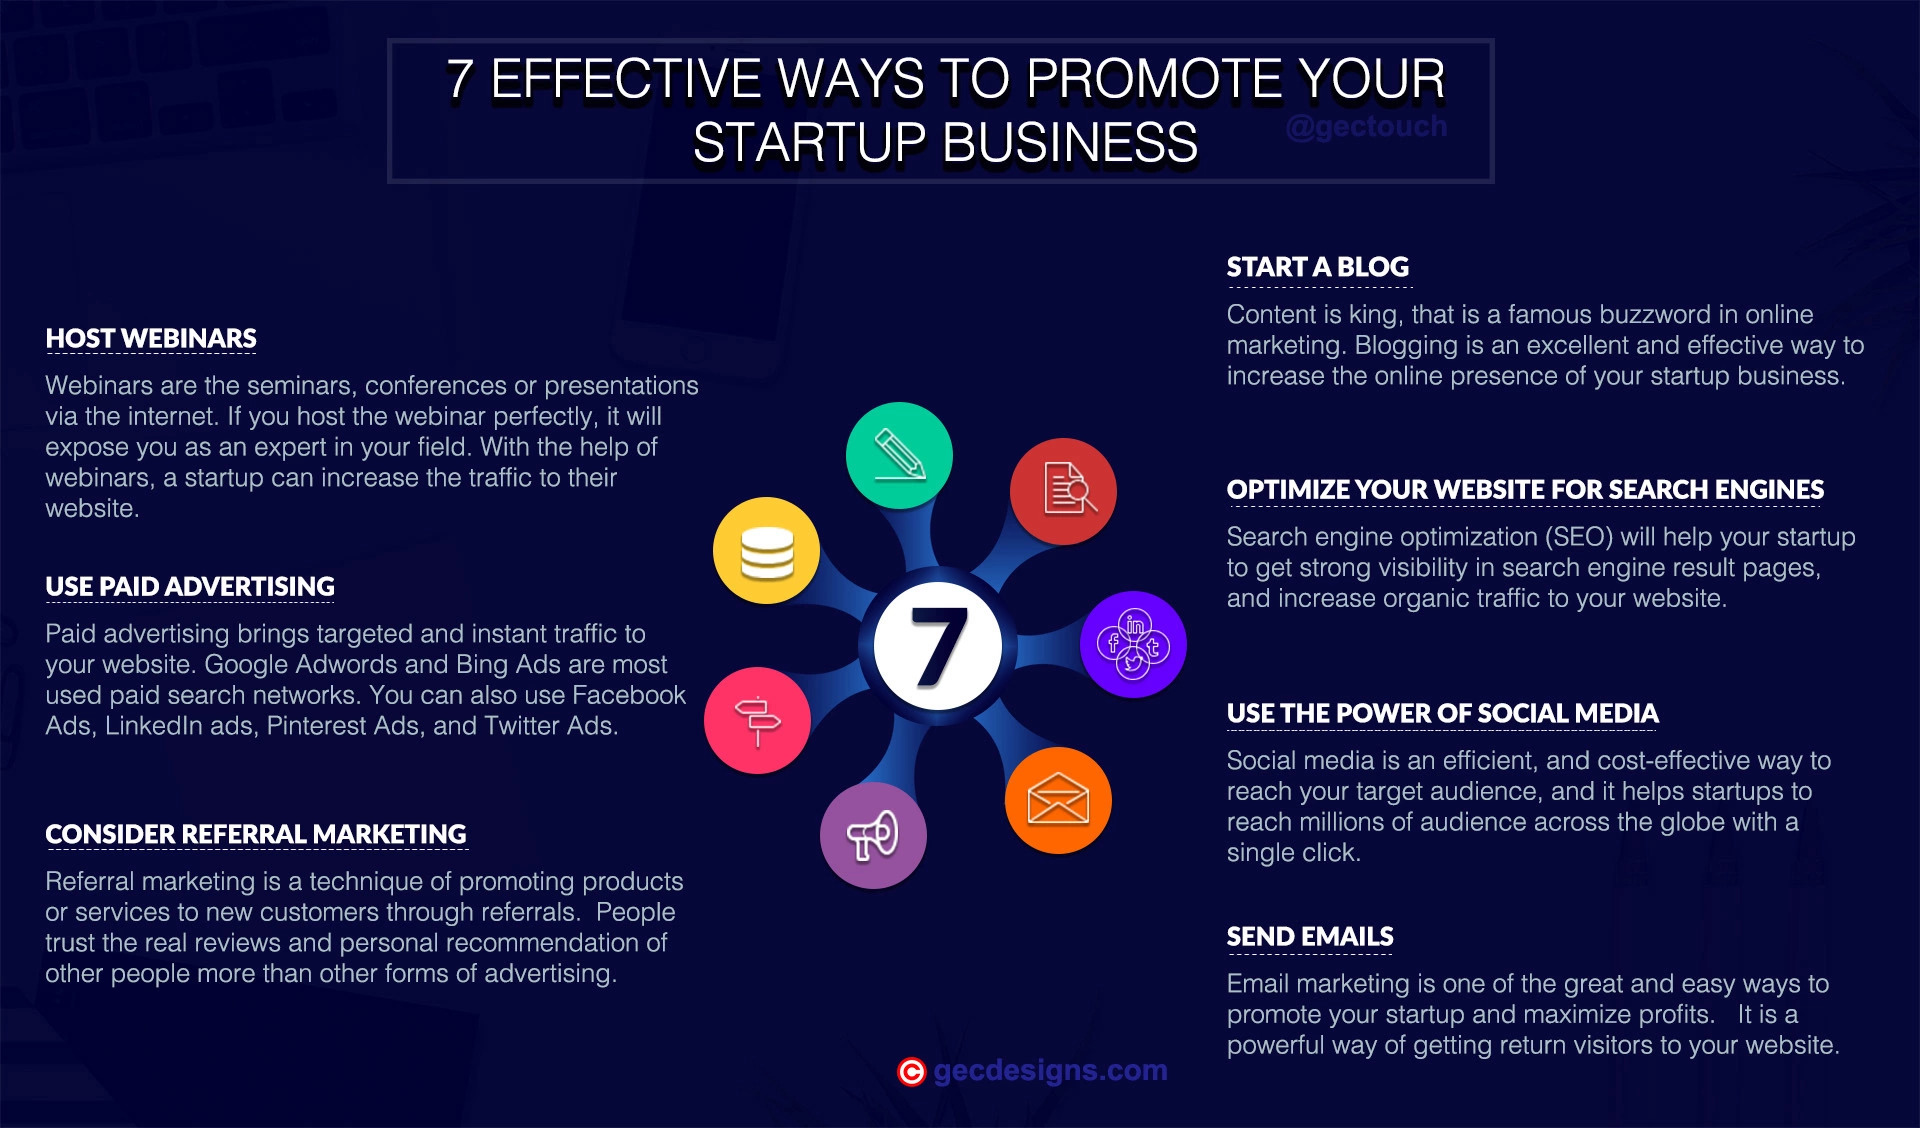 Promote startup business Infographic